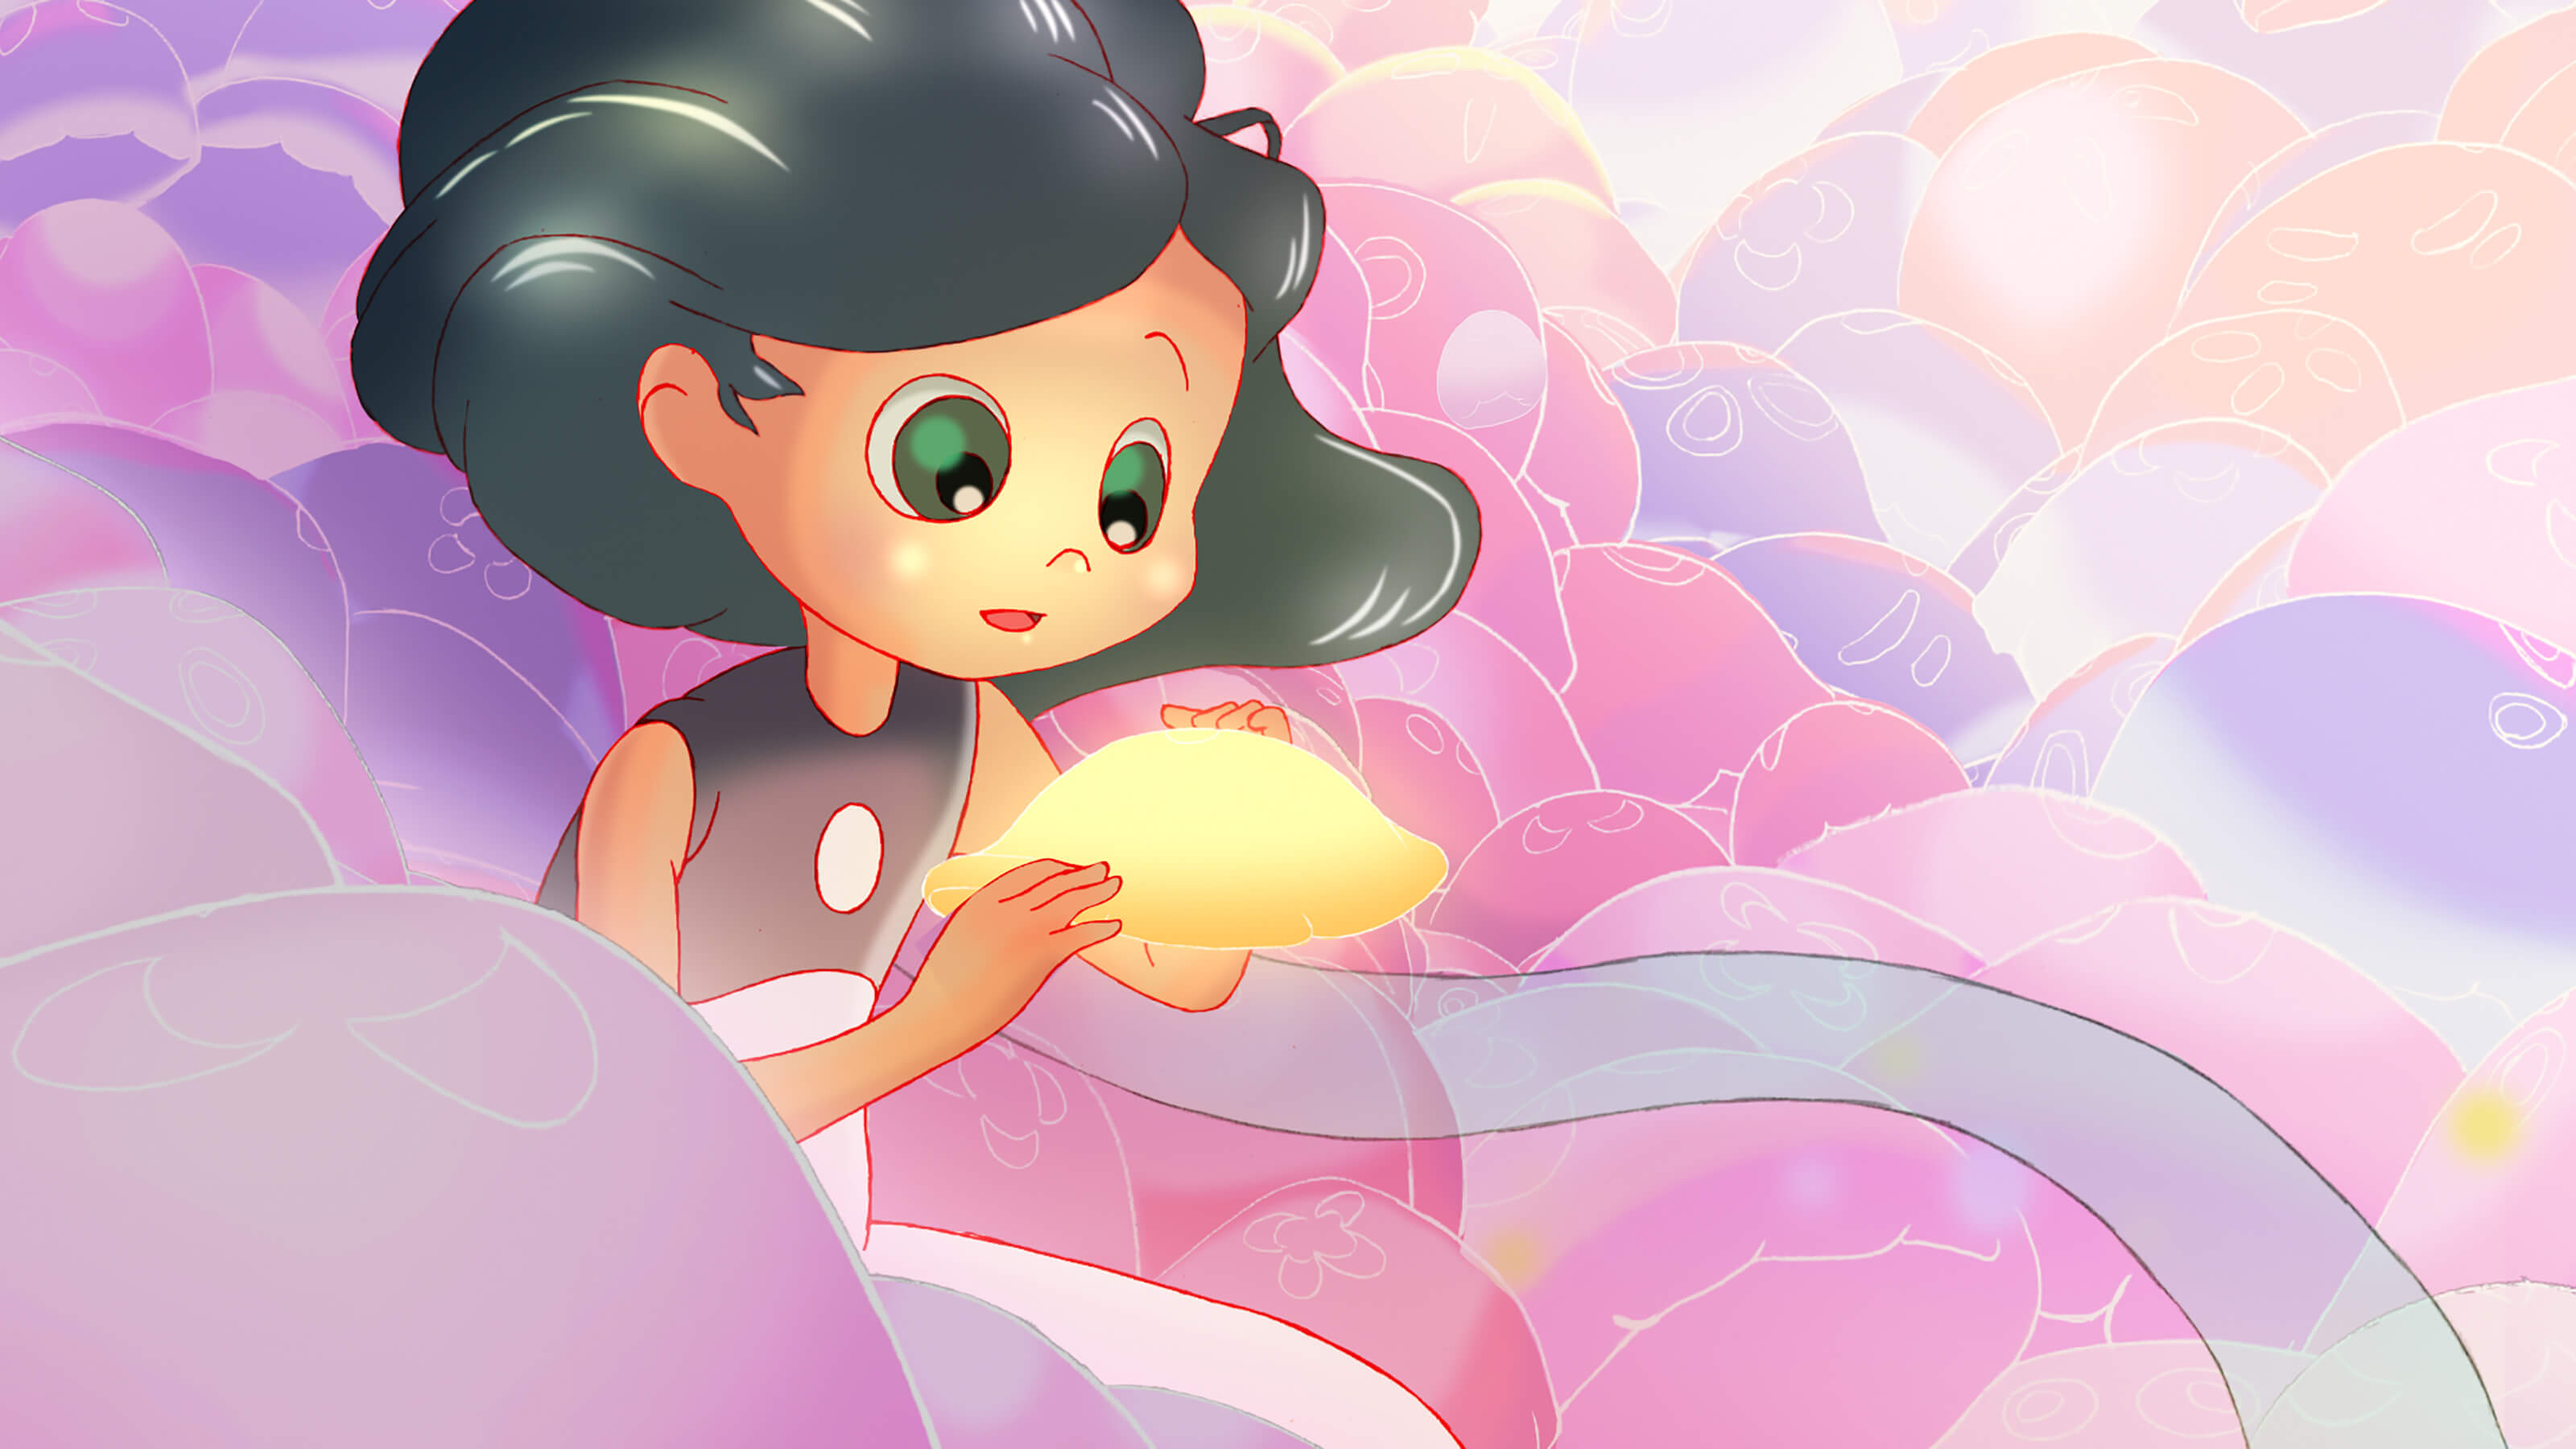 A girl with black hair and green eyes holds a yellow jellyfish in her hands, surrounded by pink, purple, and orange jellyfish